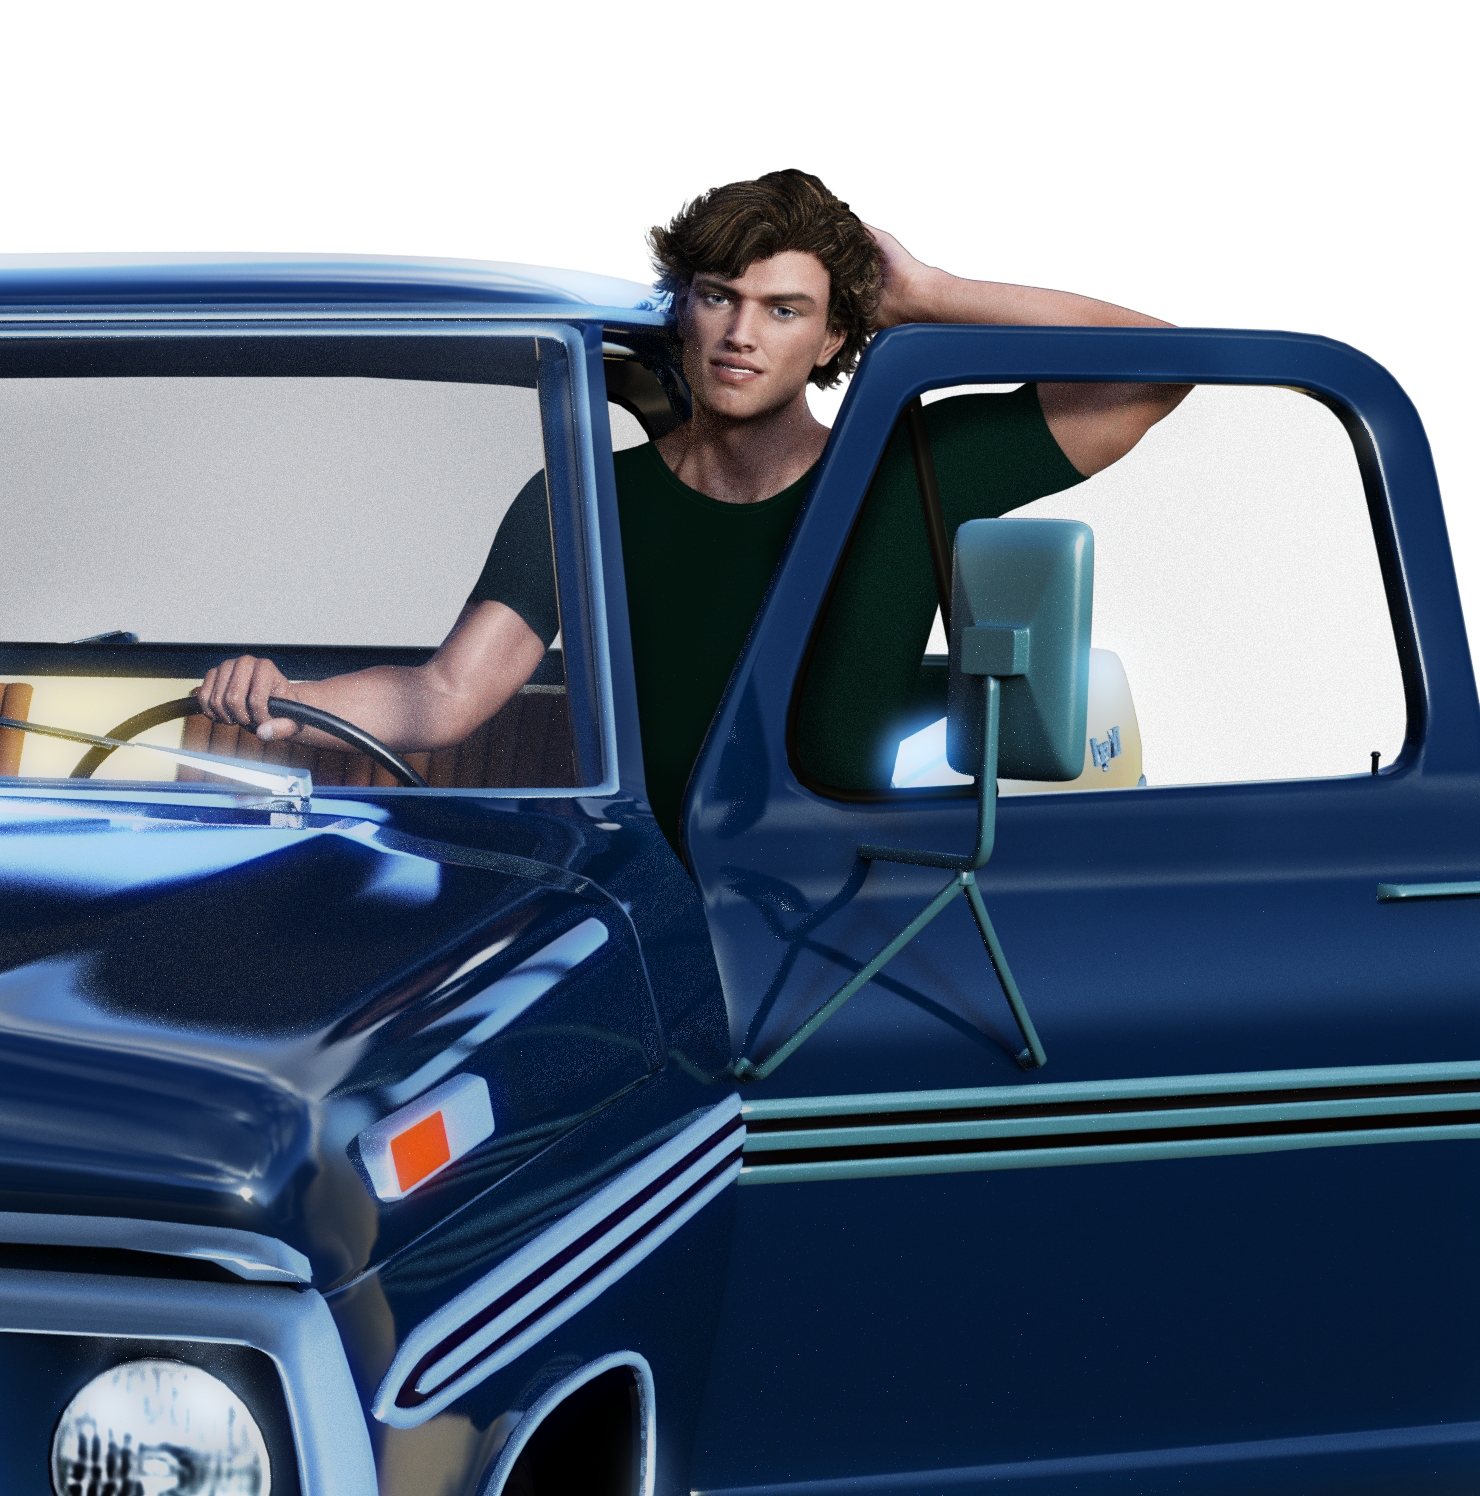 Danny and his truck